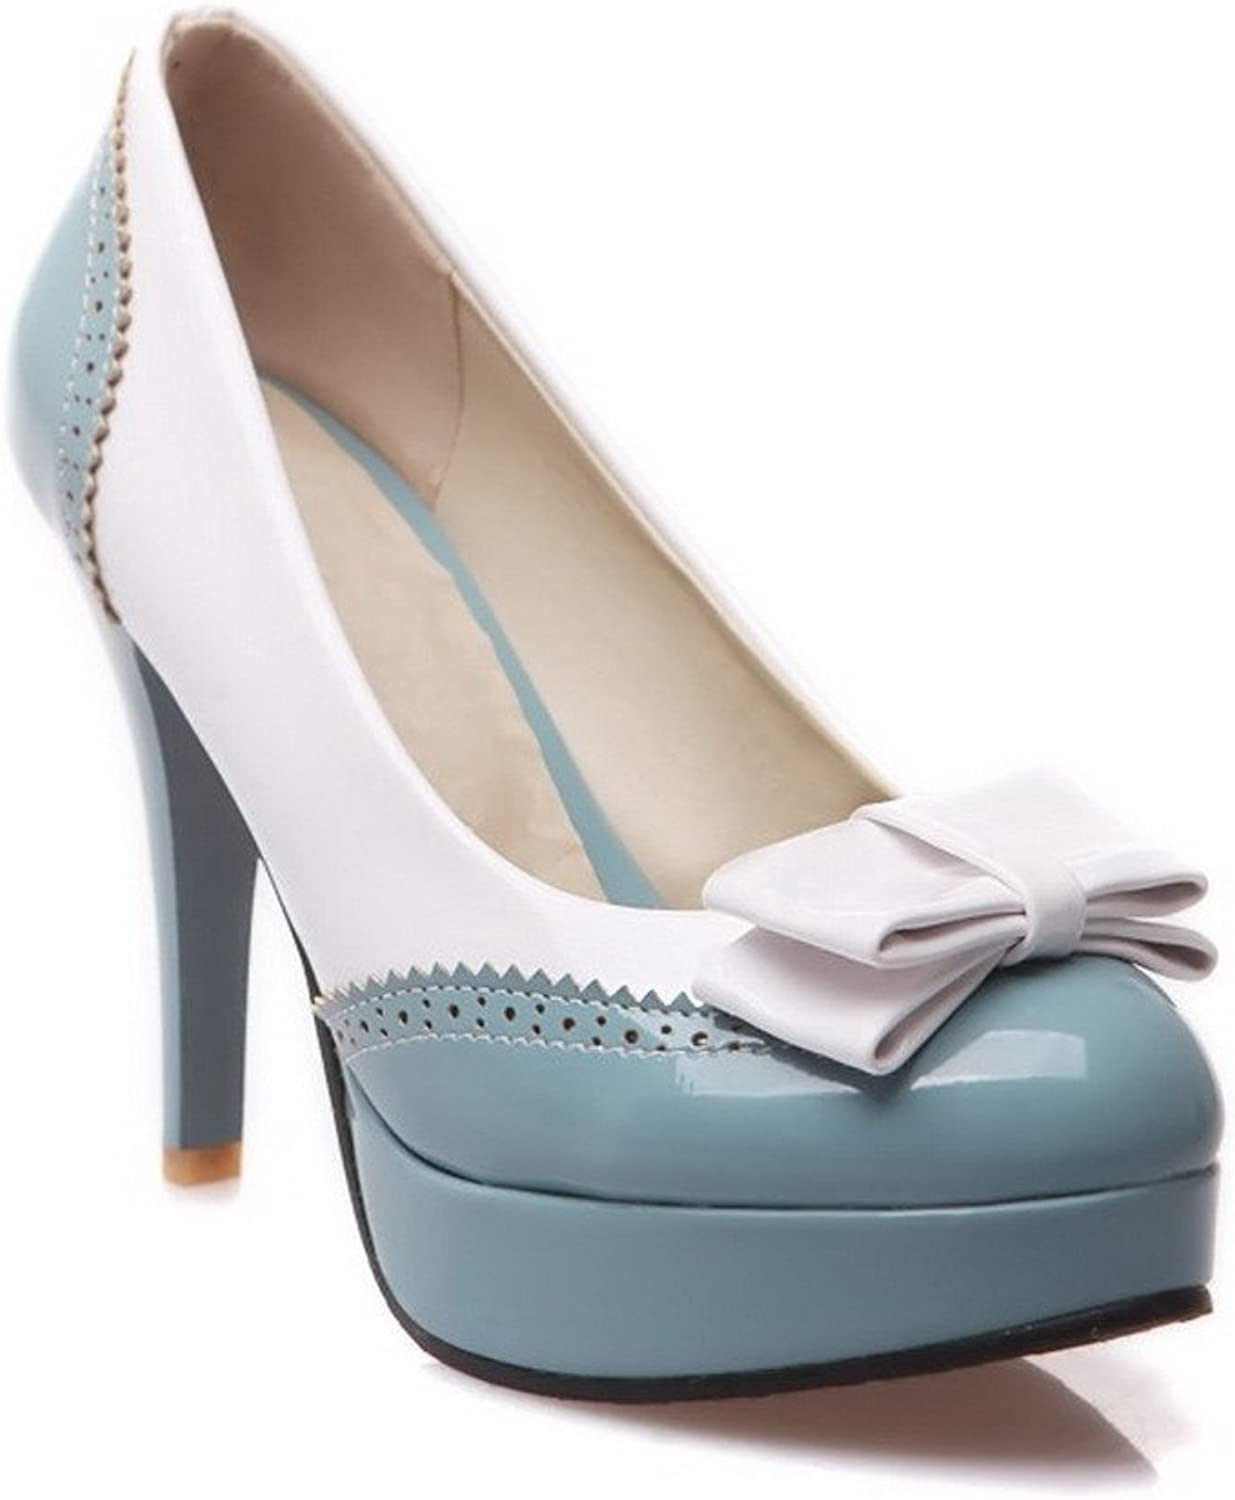 WeenFashion Women's Pull-on High-Heels PU Dichromatic Round Closed Toe Pumps-shoes